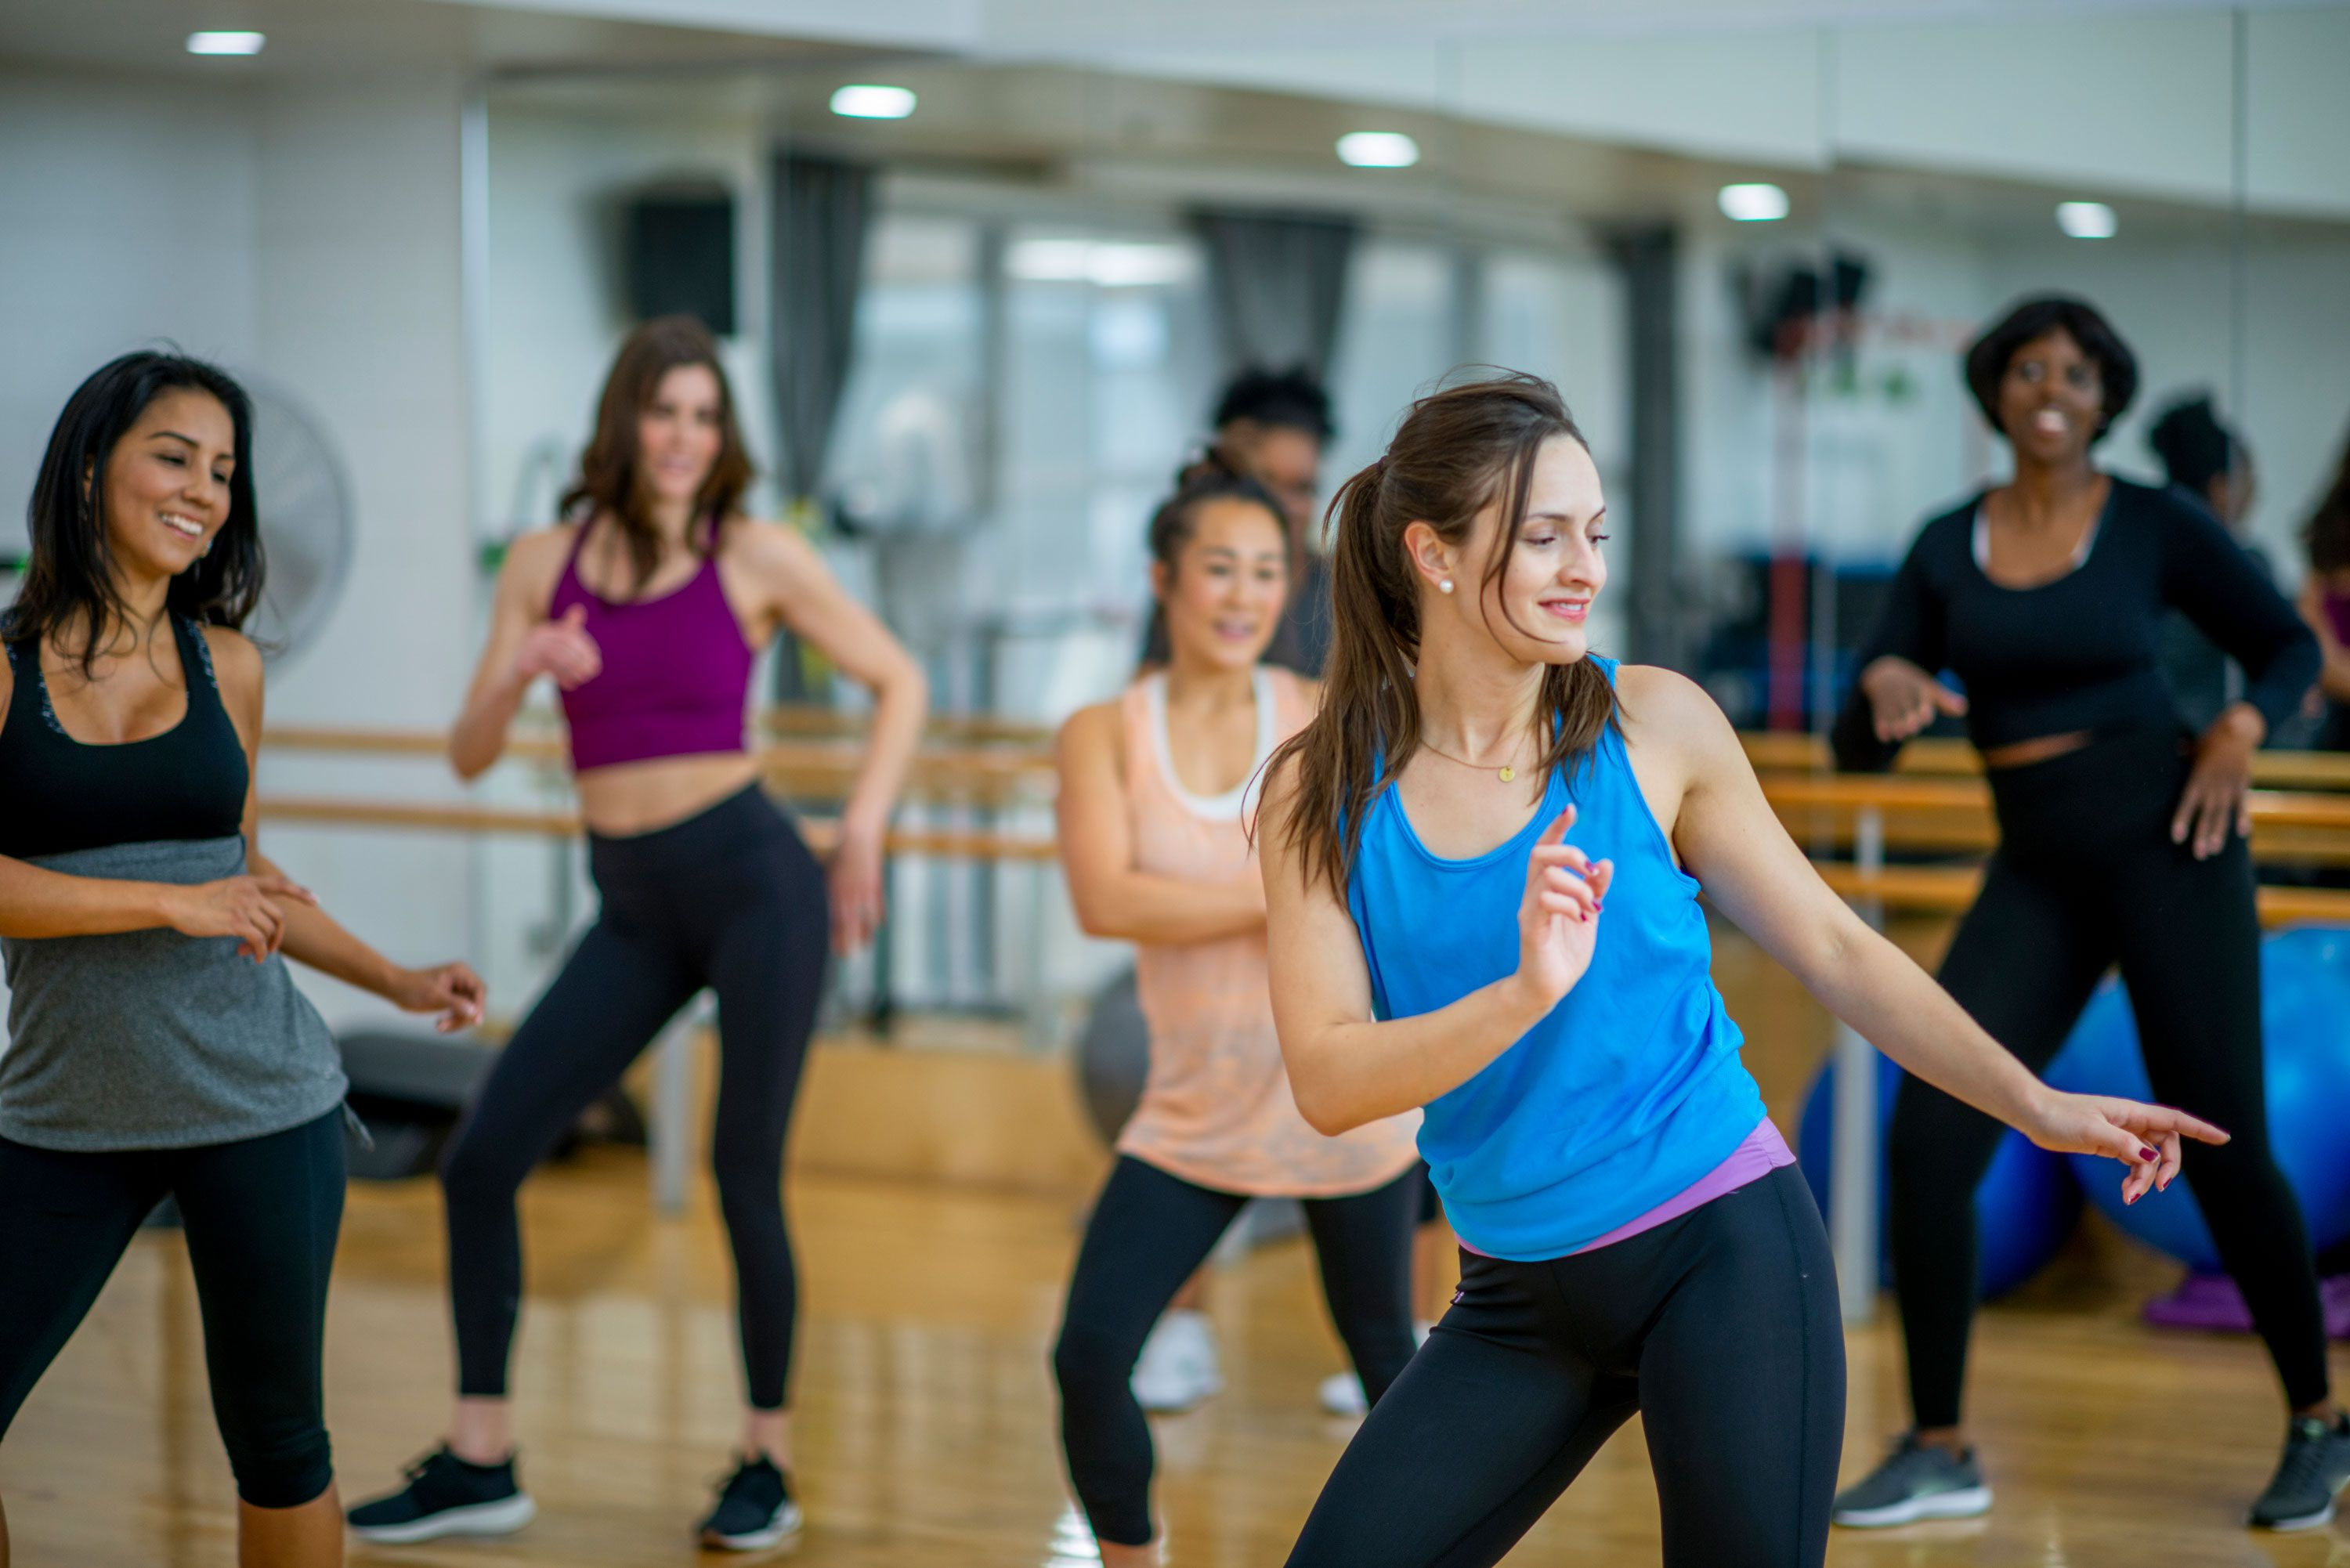 Zumba: Pros, Cons, and How It Works